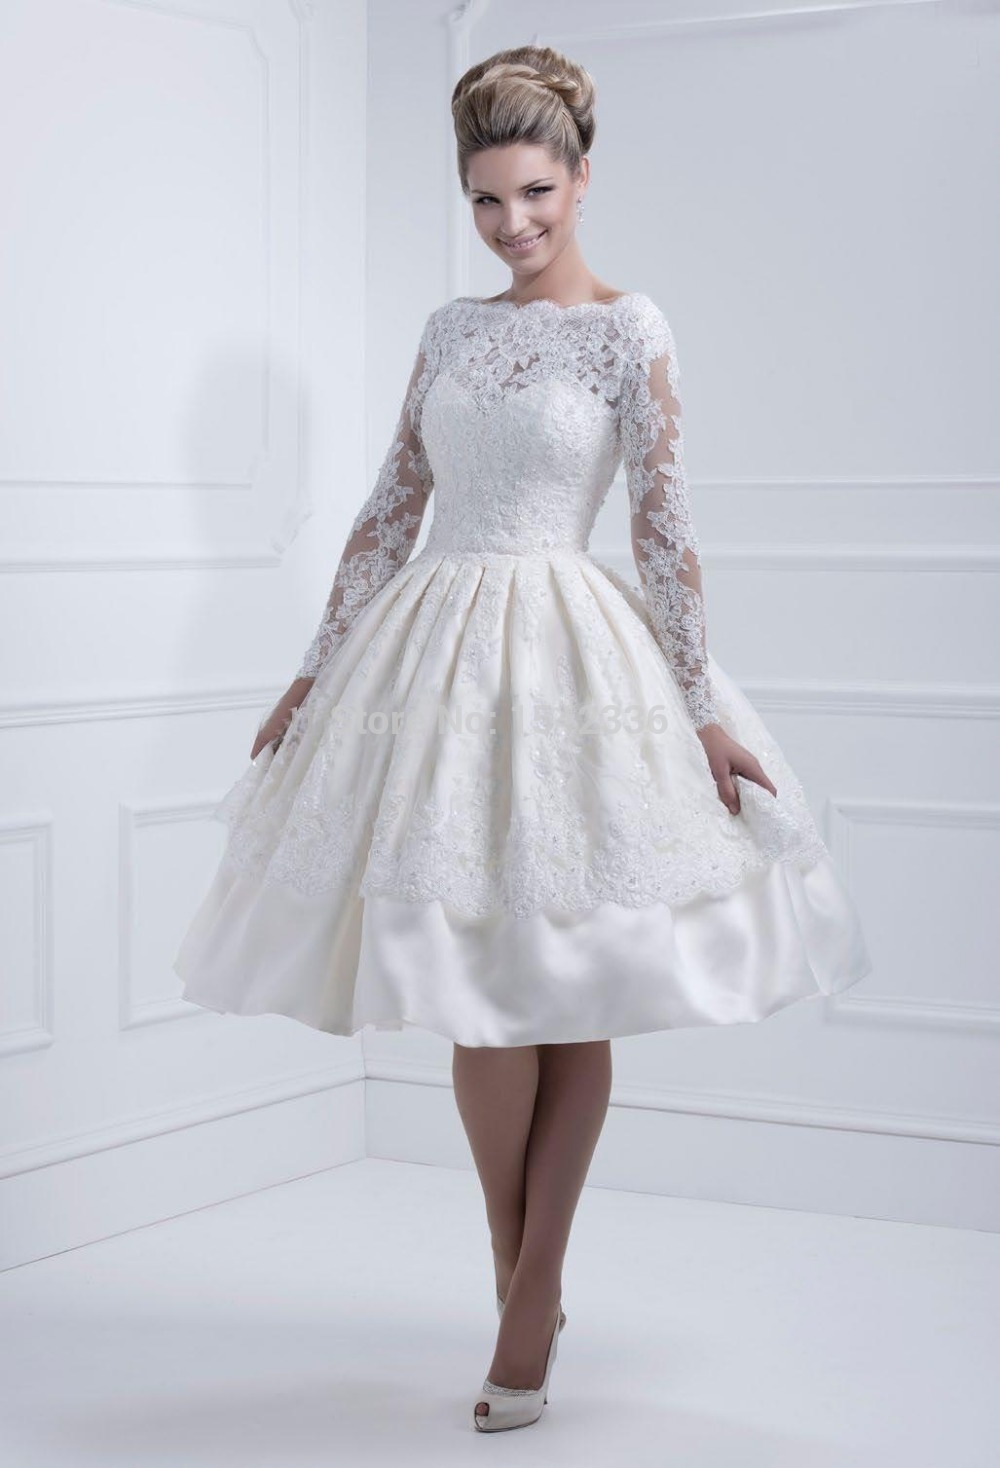 Lace long sleeves wedding dresses 2016 bateau neckline new for Vintage beaded lace wedding dress